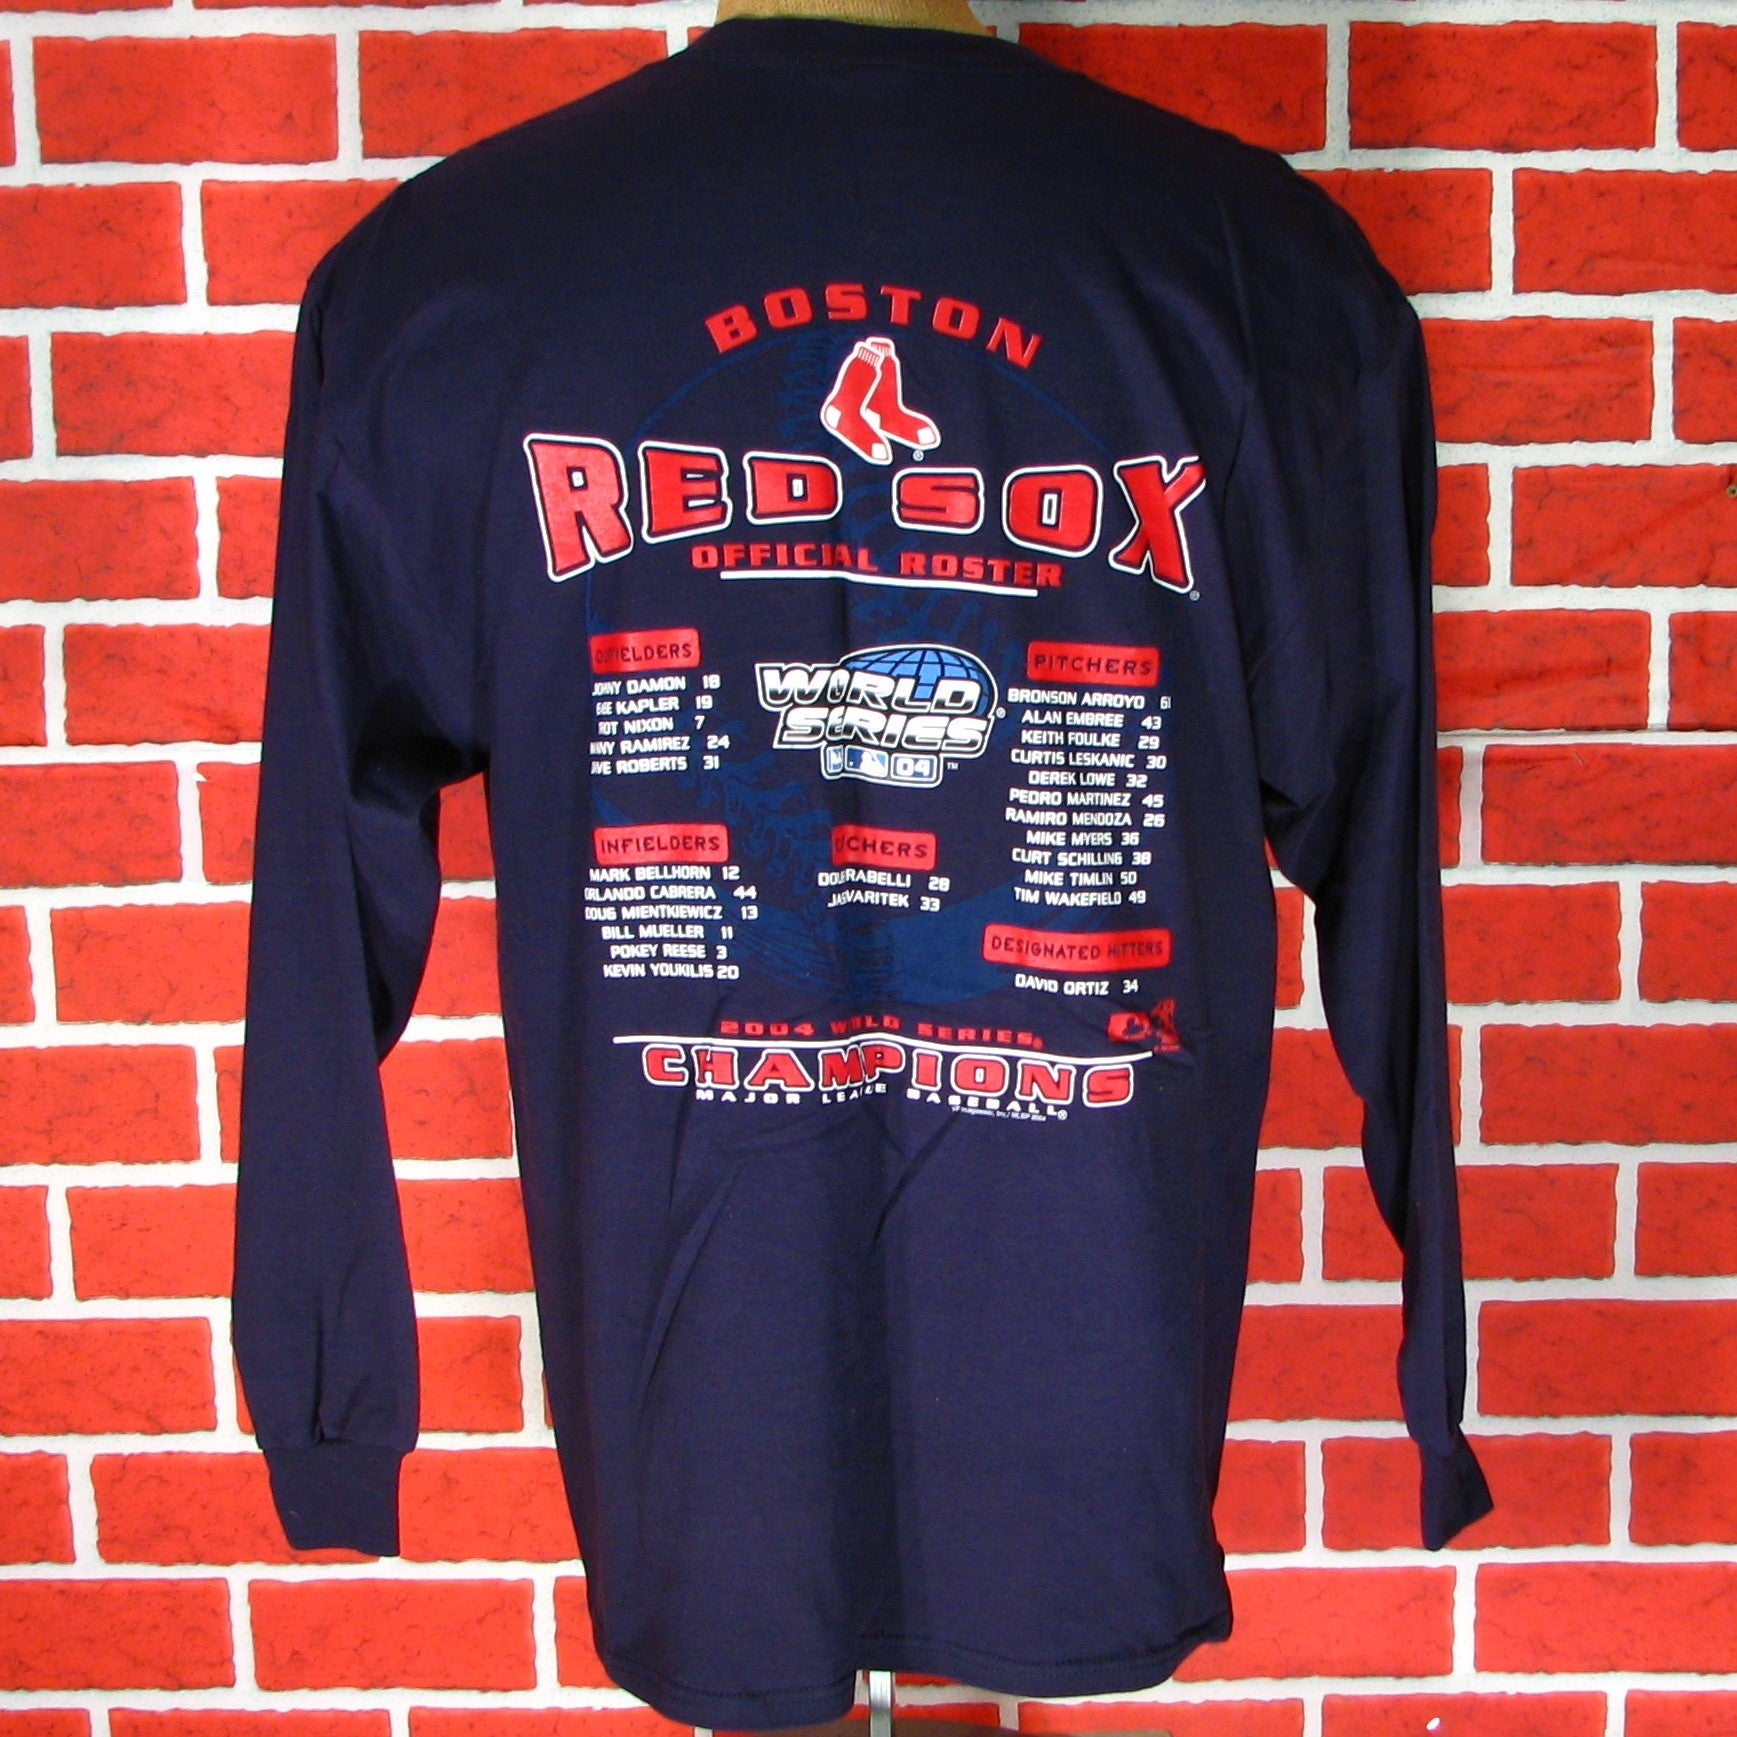 Boston Red Sox 2004 World Series Champs Long Sleeve T-Shirt